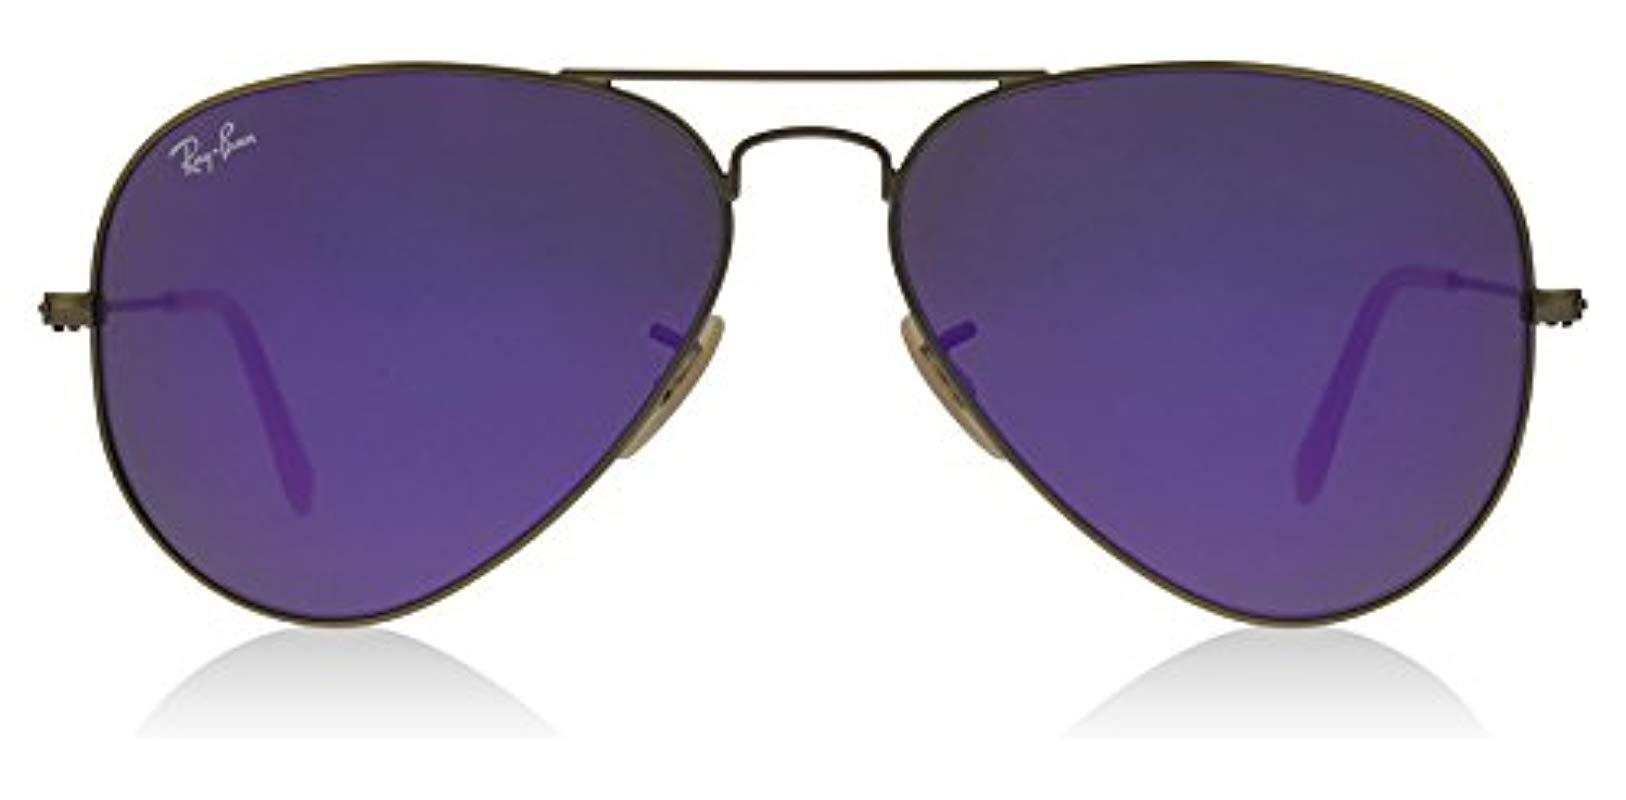 d974f90f7e Ray-Ban - Multicolor Unisex Rb3025 Aviator Polarized Sunglasses 55mm for  Men - Lyst.